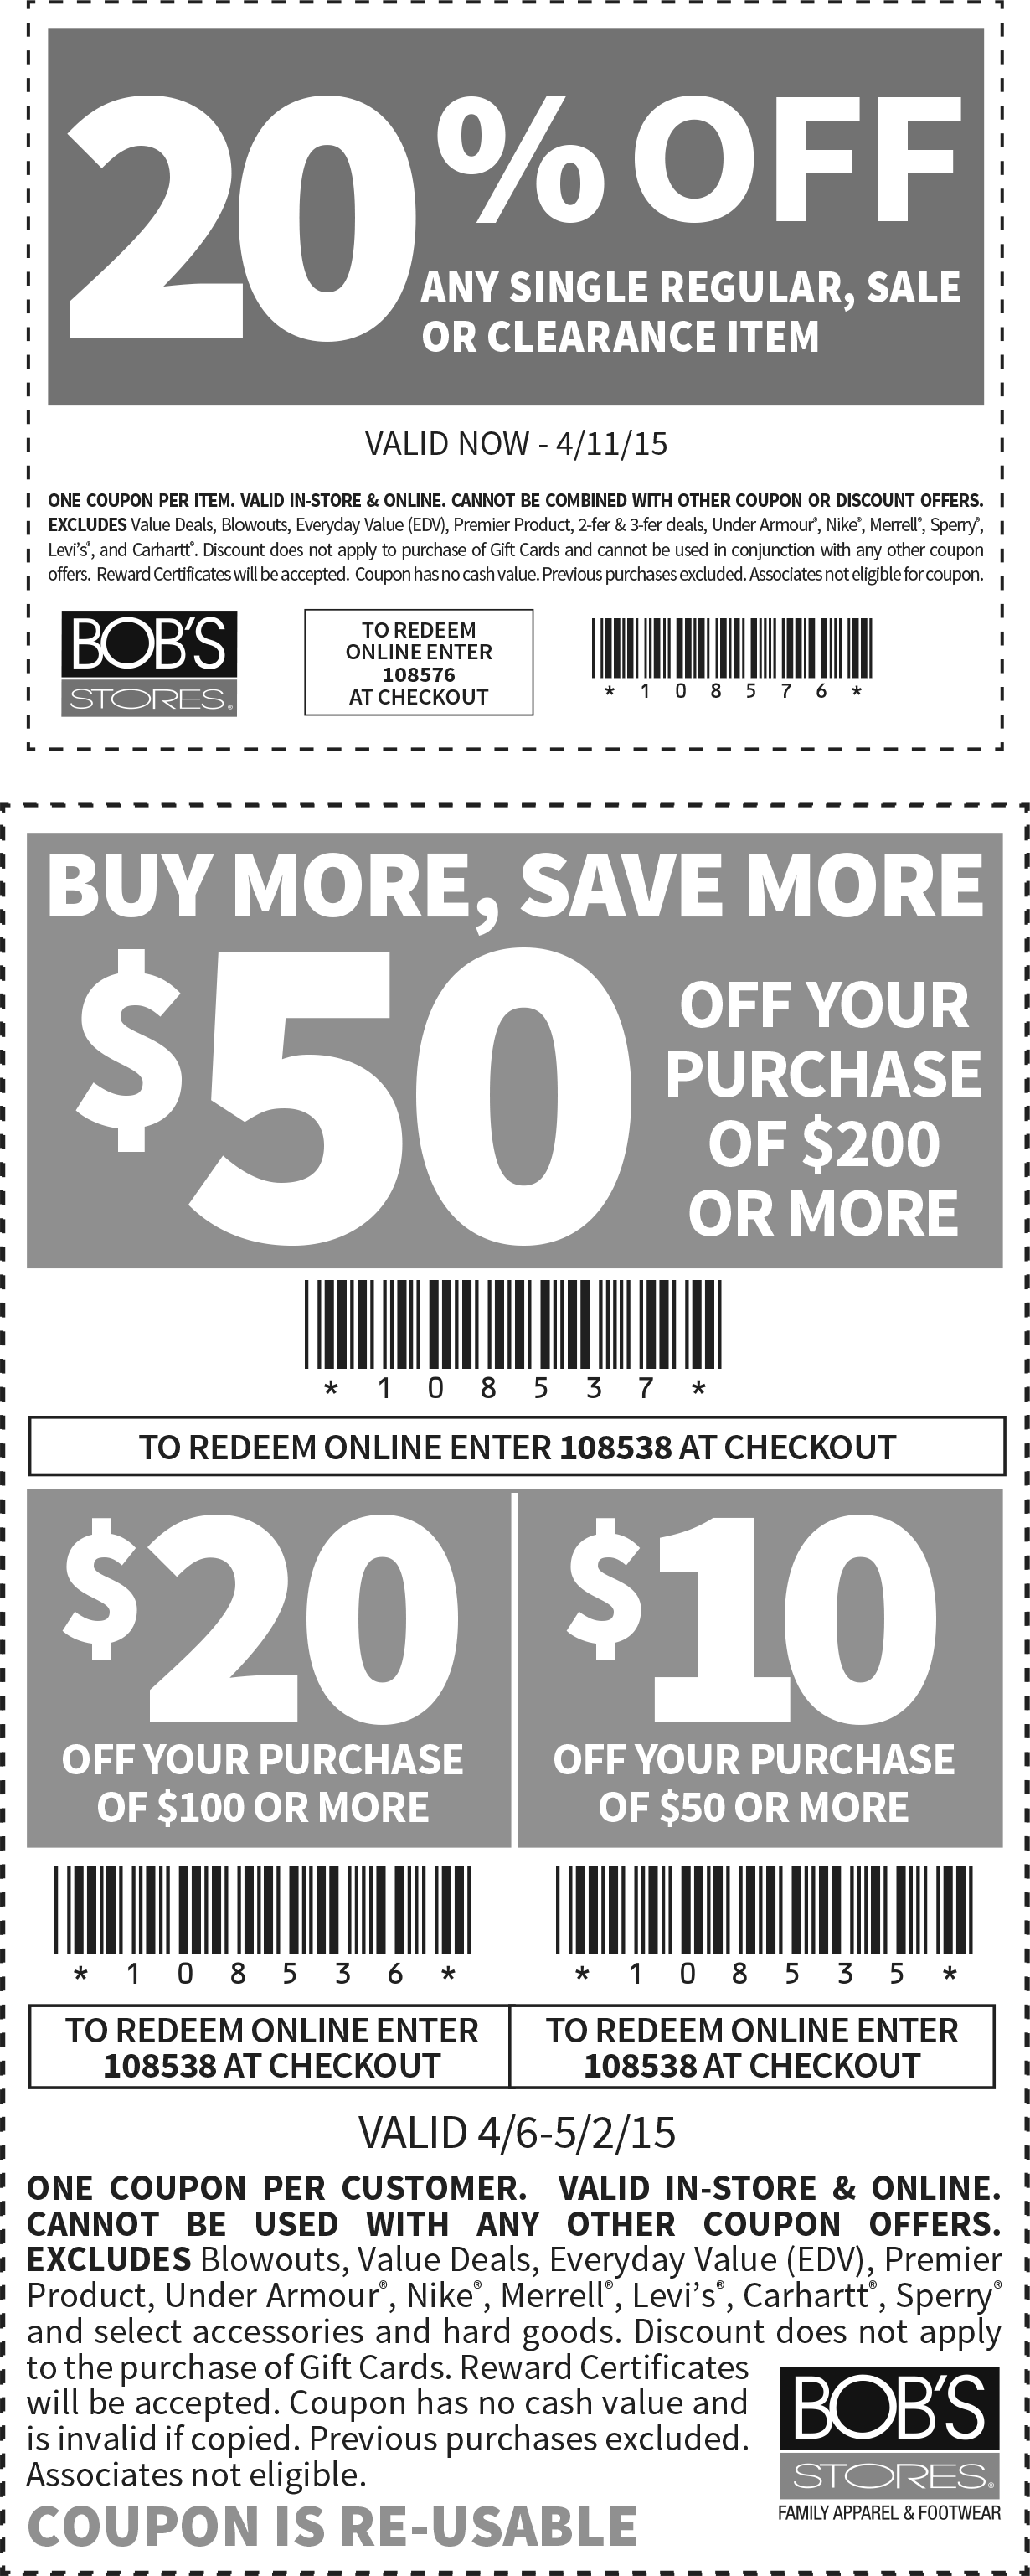 Bobs Stores Coupon January 2017 20% off a single item at Bobs Stores, or online via promo code 108576